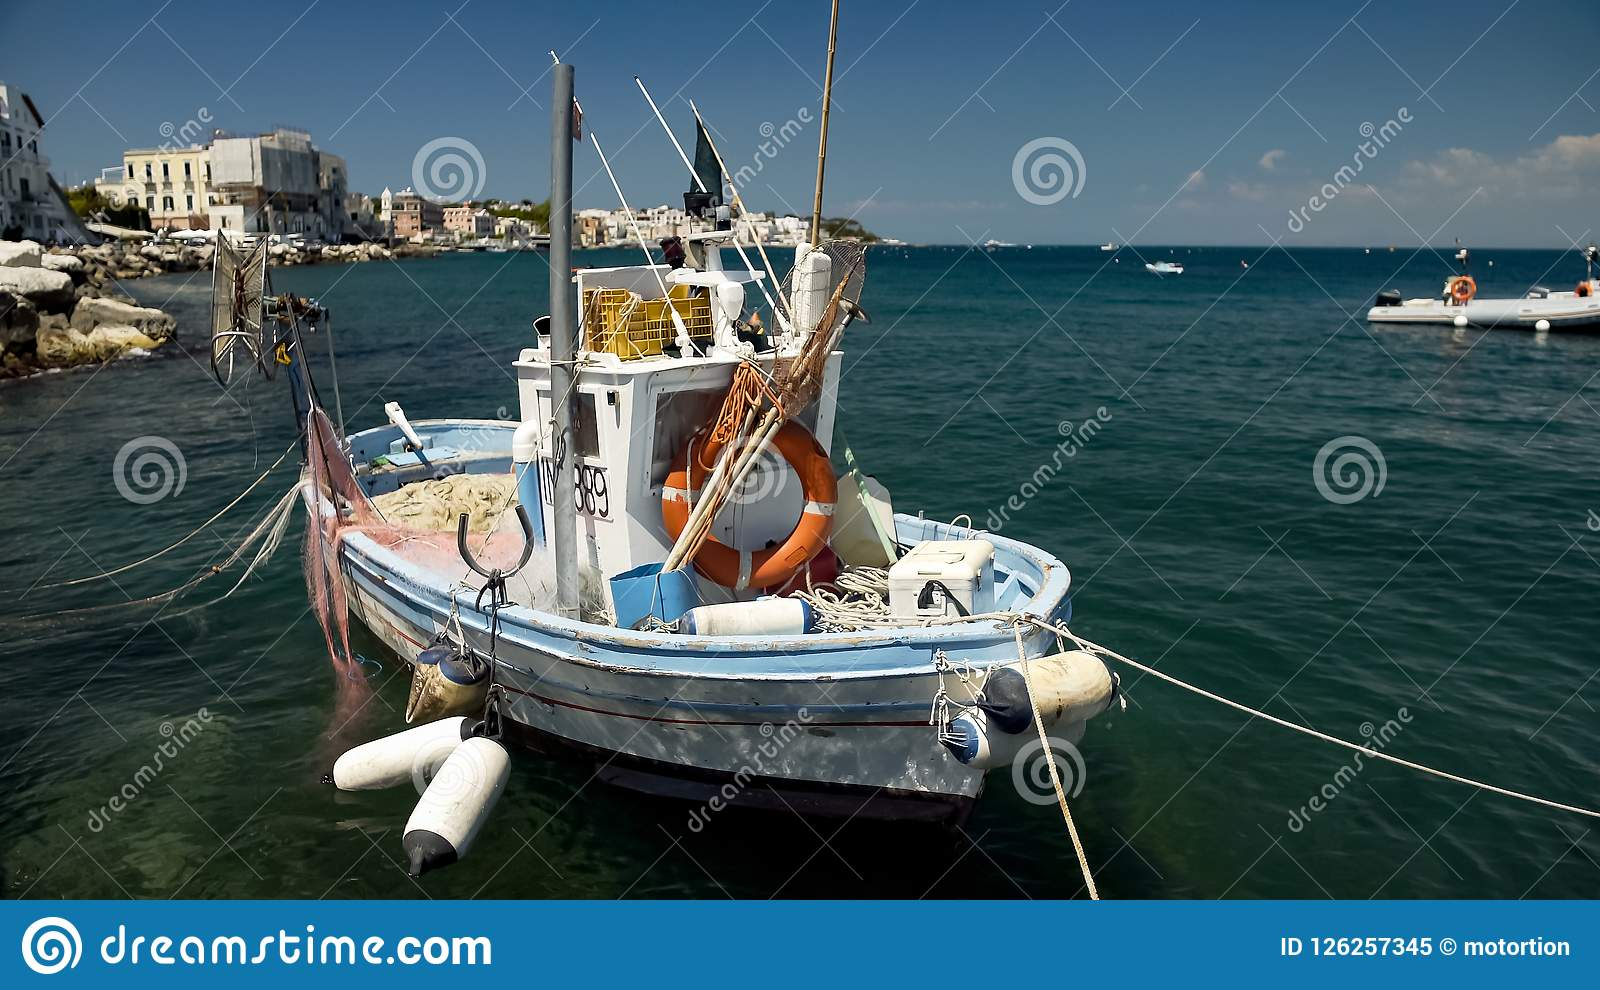 Fishing Boat Floating On Water, Drift Nets Lying On Deck, Small